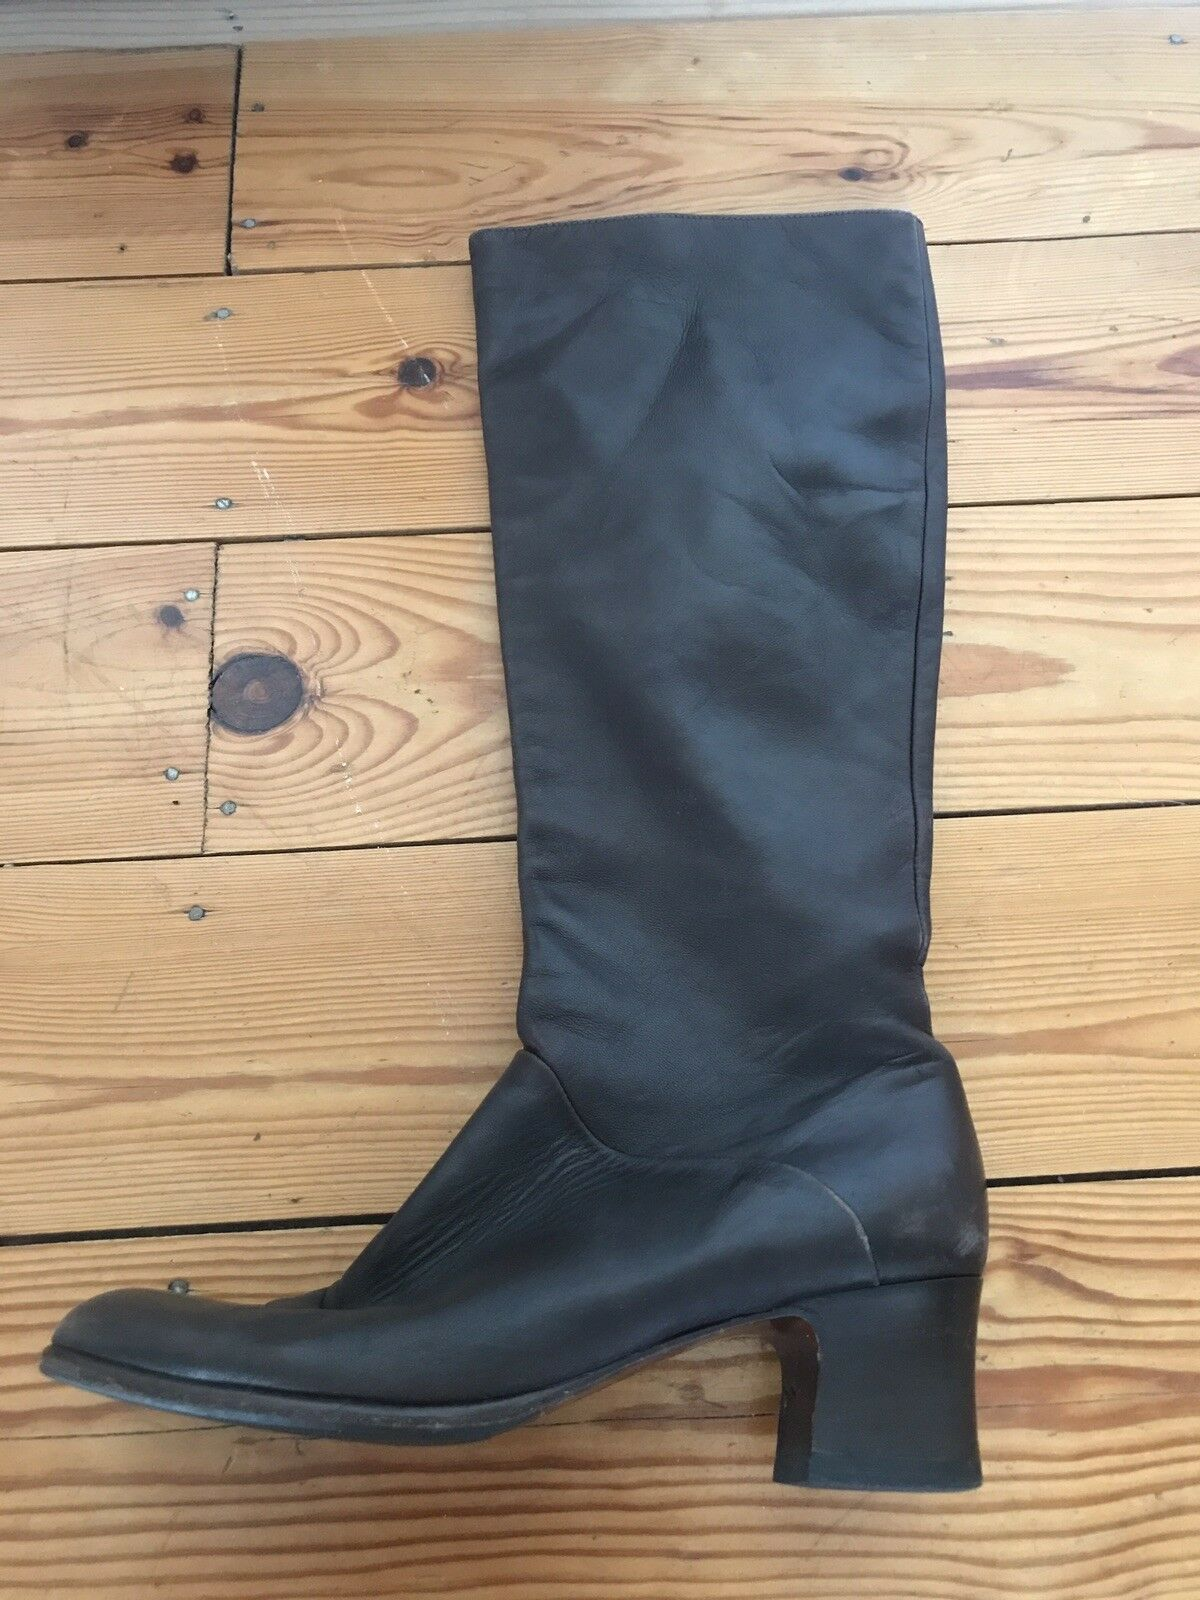 SANNA ROMA LADIES BROWN LEATHER BOOTS SIZE 36.5